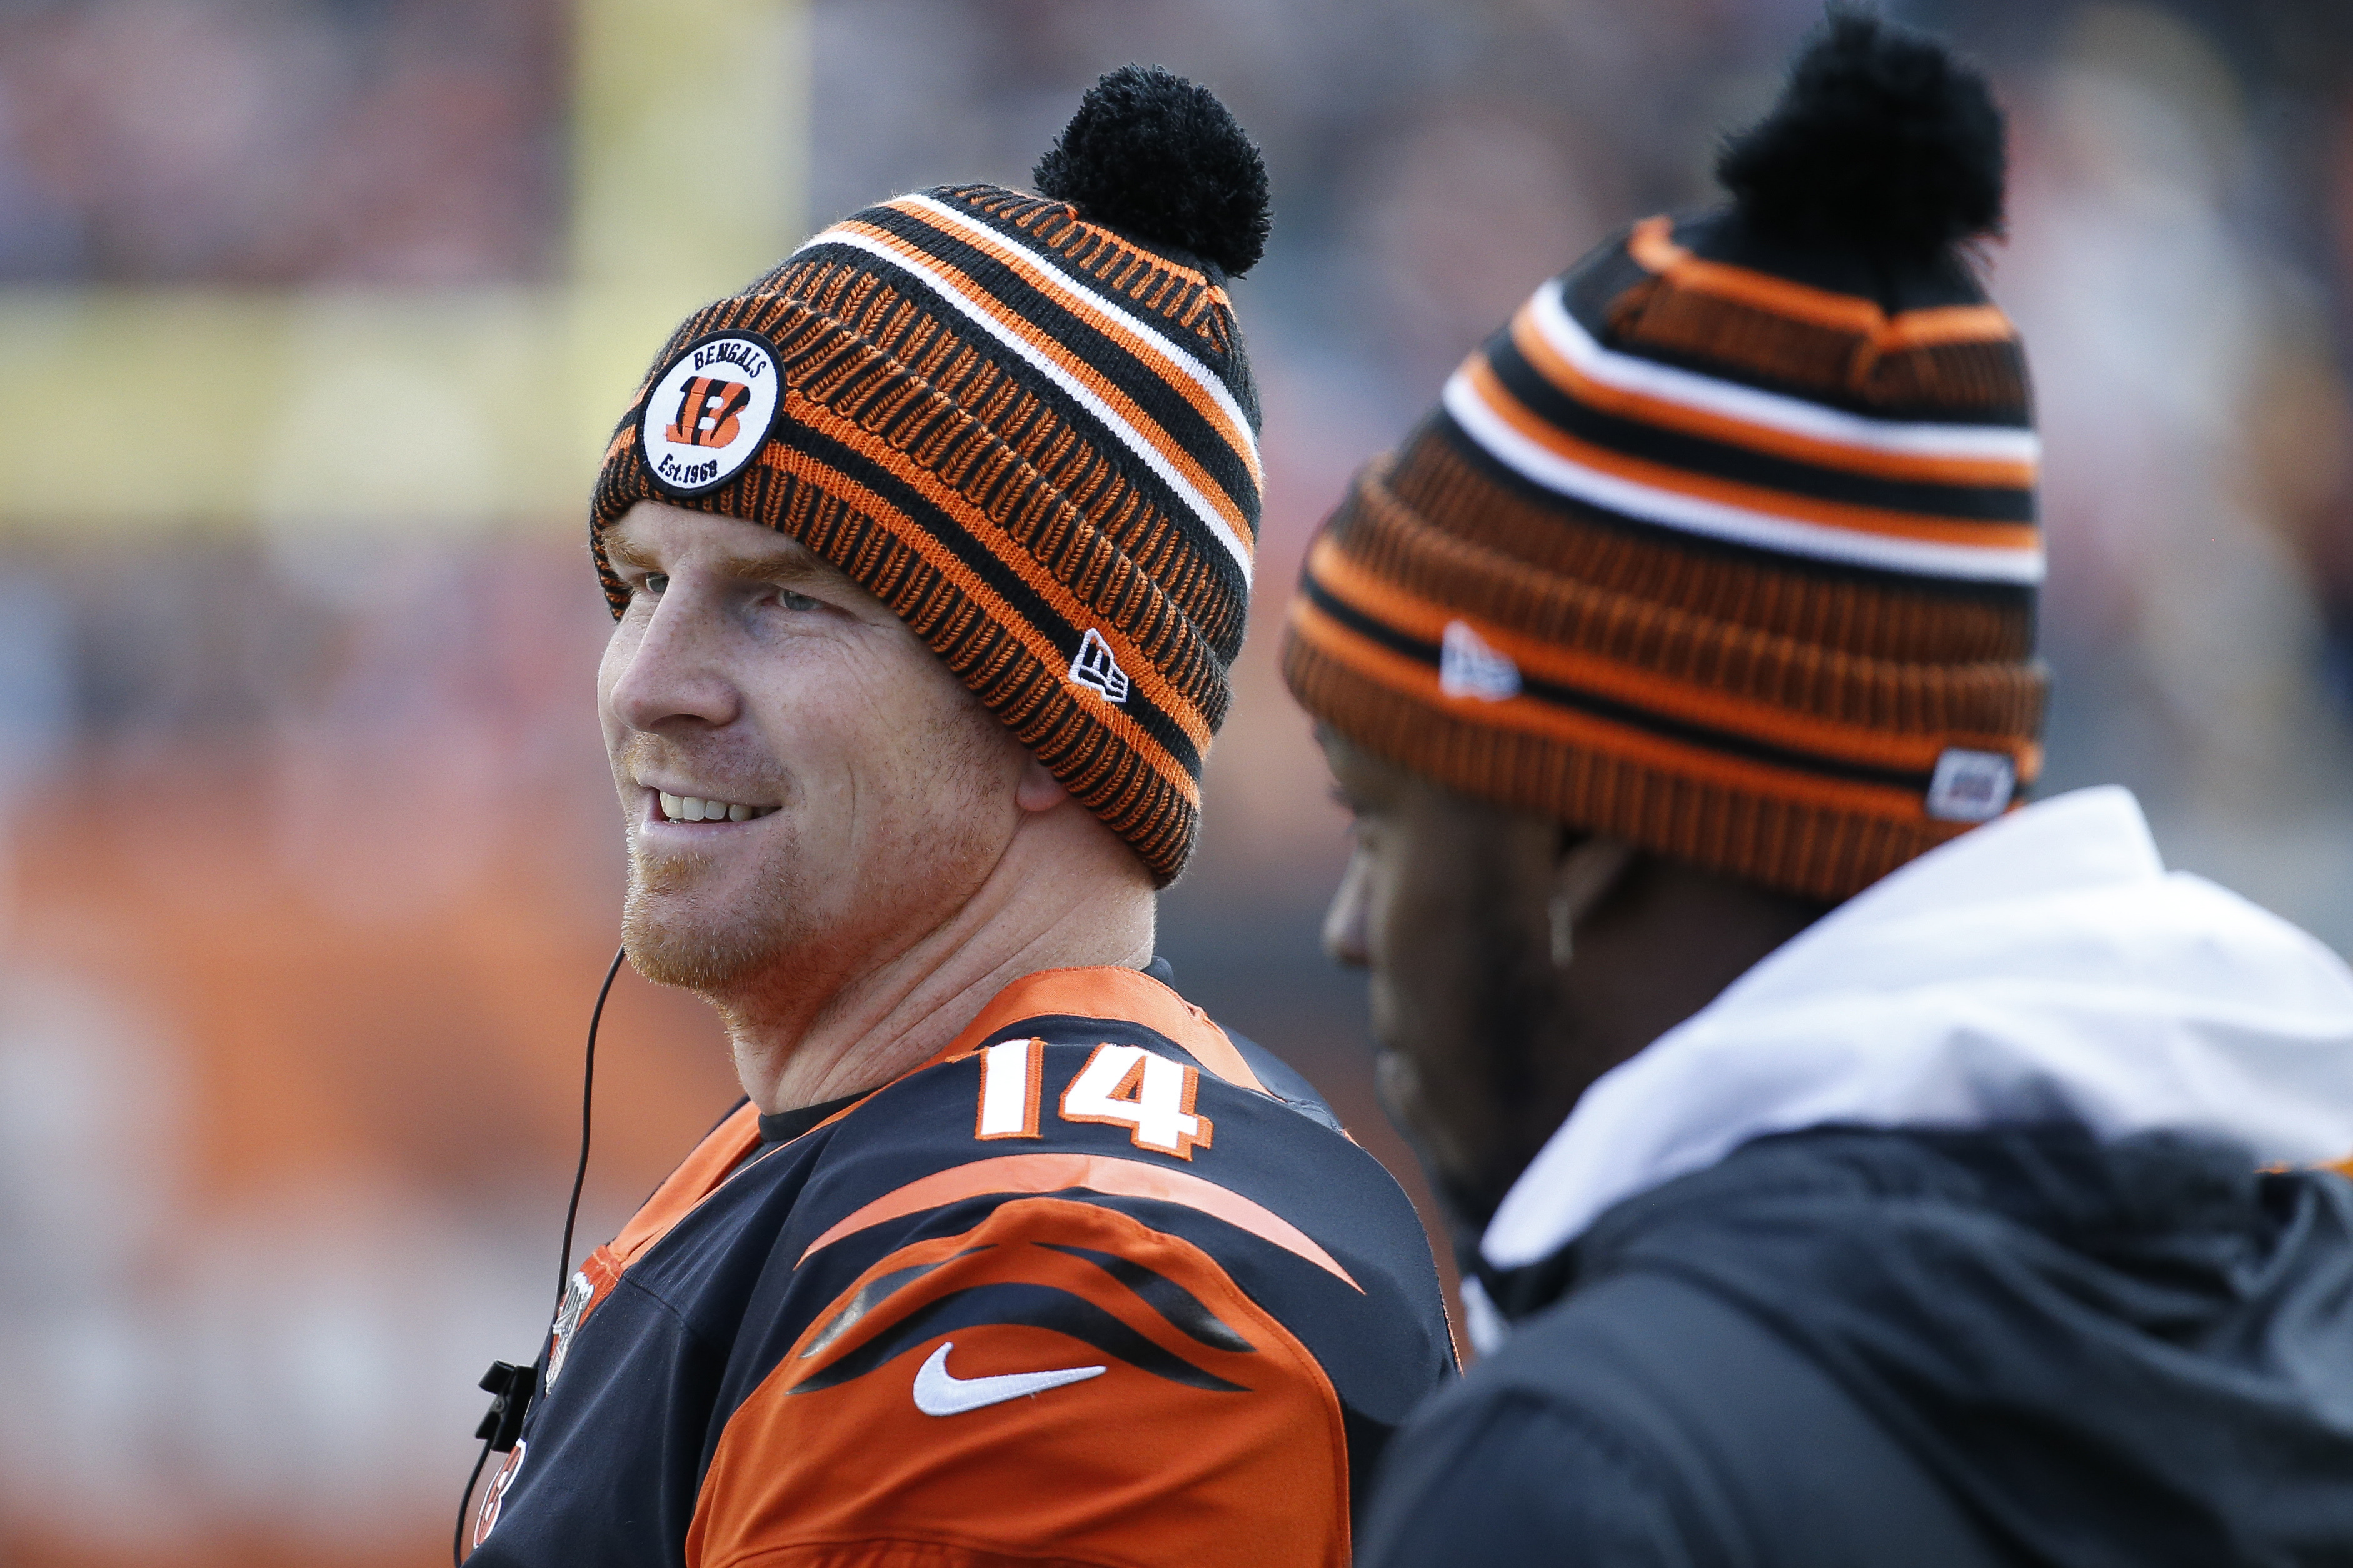 Andy Dalton past bitterness, back as Bengals starting QB